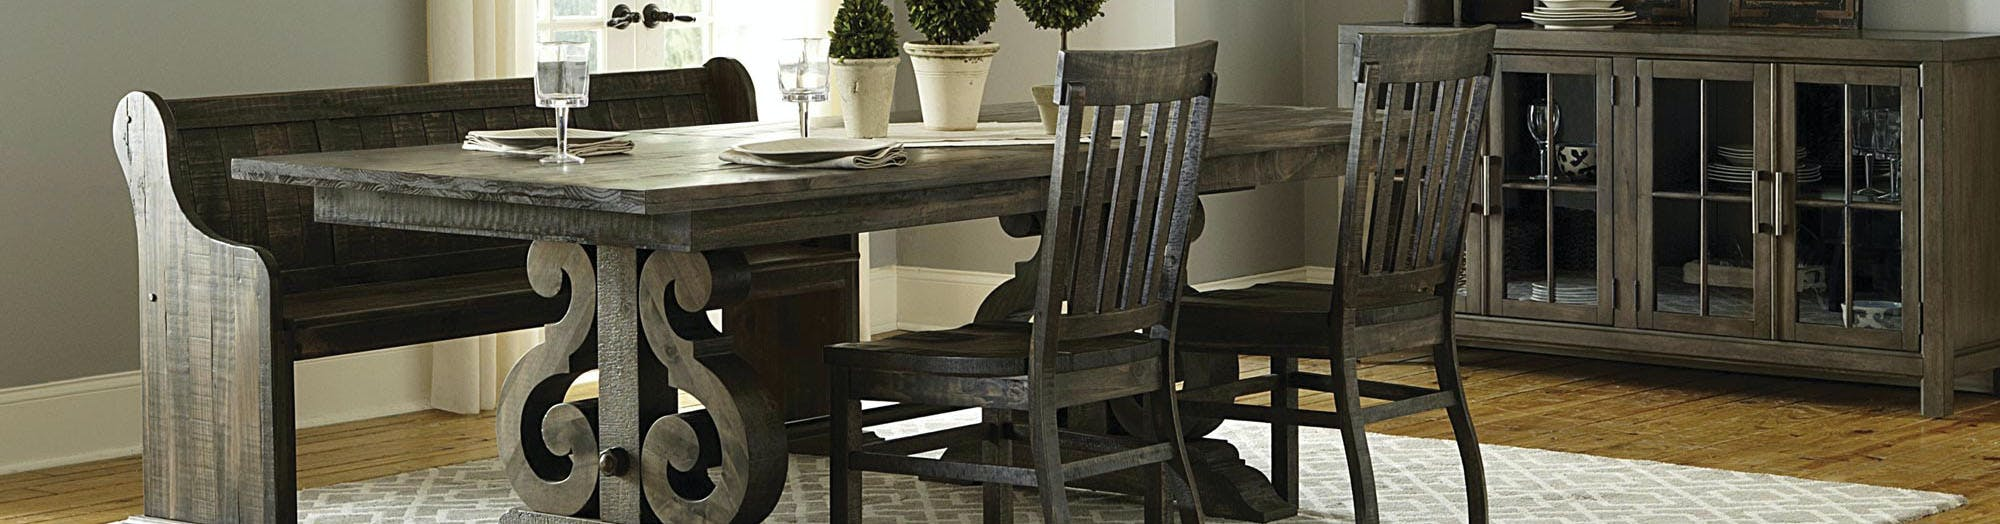 Shop For Dining Sets In Cincinnati And Dayton OH